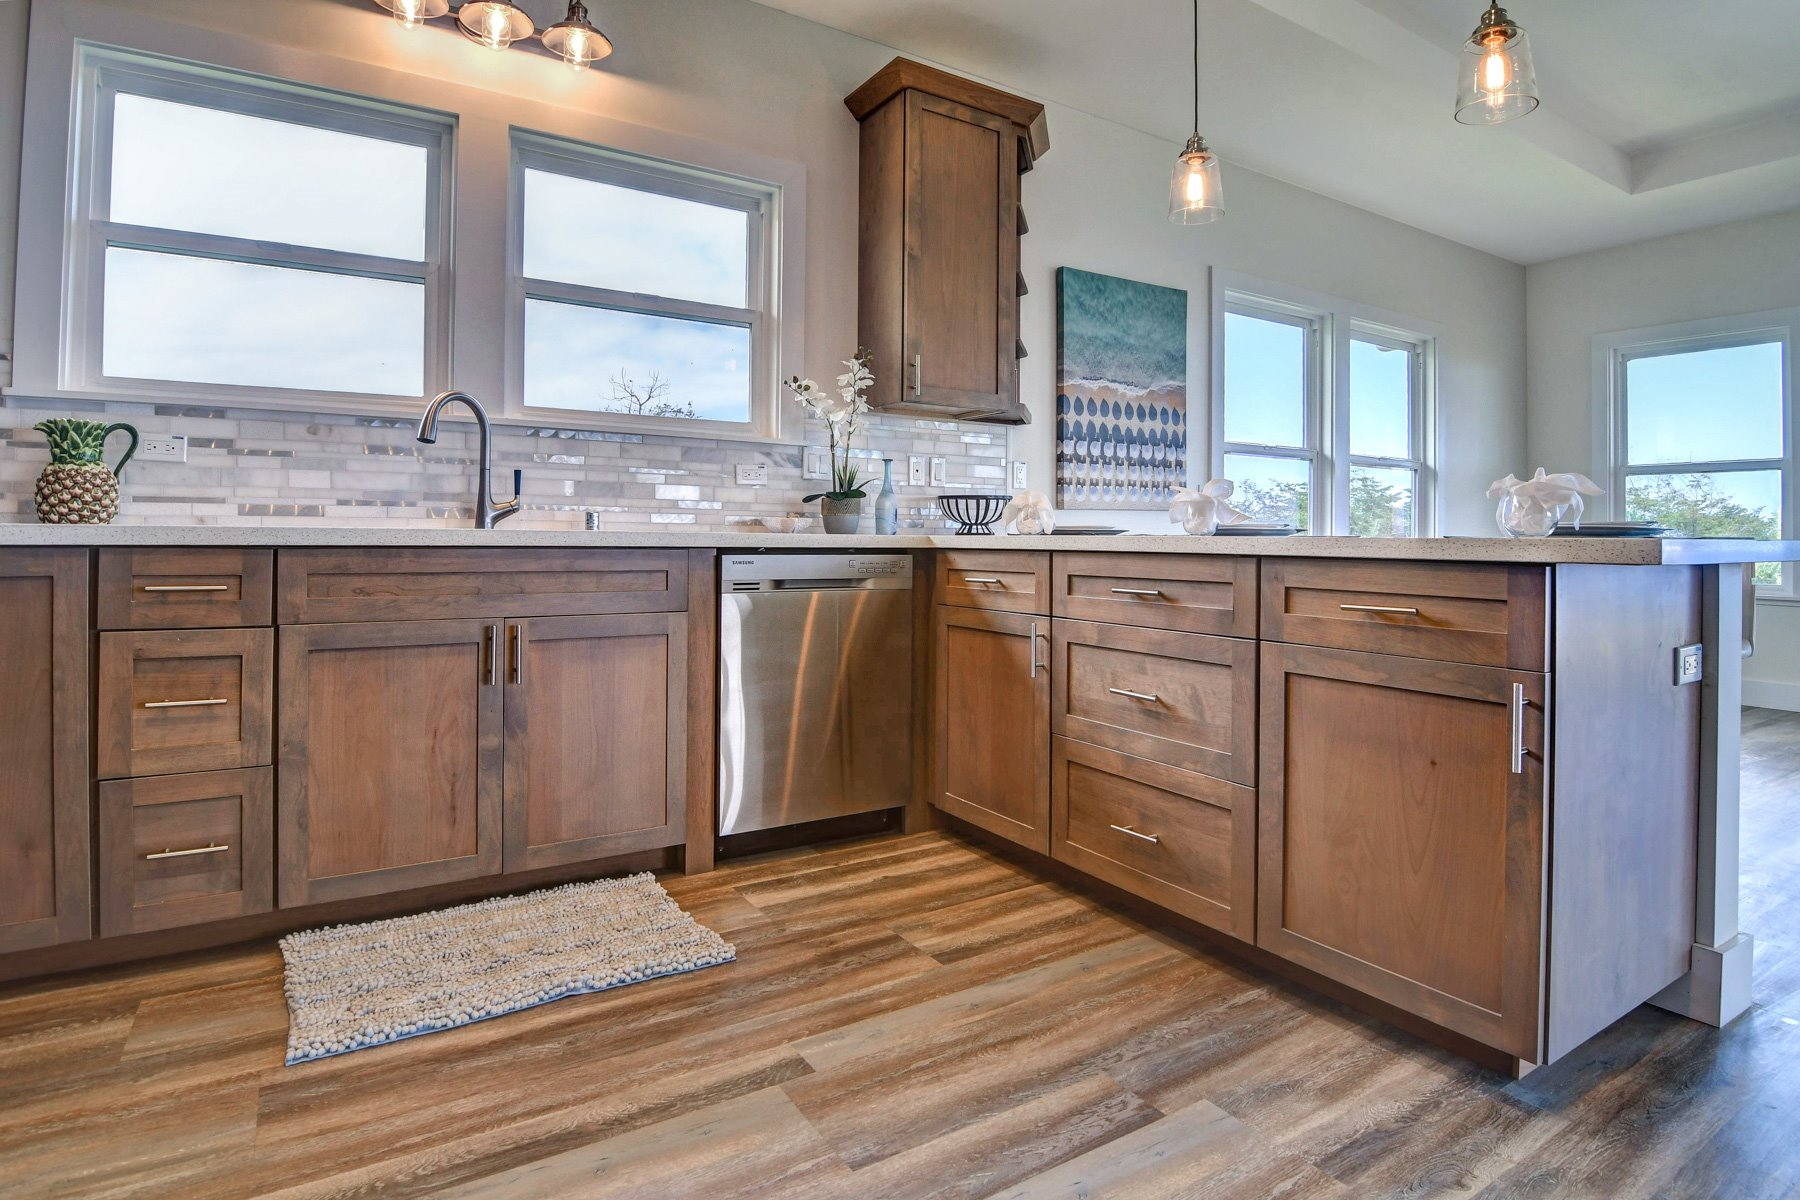 High quality custom cabinetry, all stainless appliances, and custom high quality quartz countertops. Propane appliances and solar hot water.